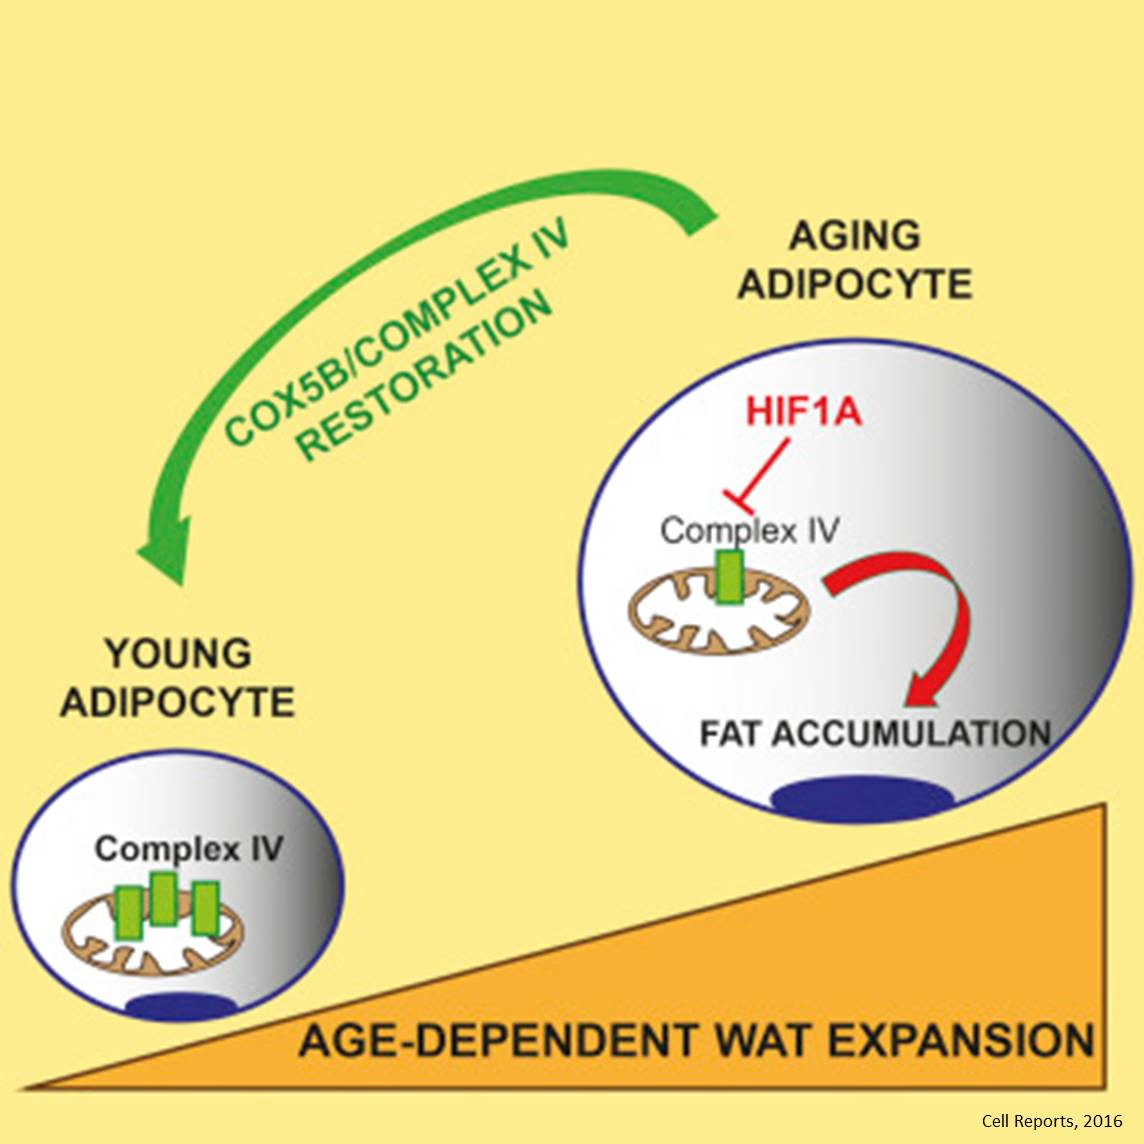 Role of Mitochondrial Complex IV in Age-Dependent Obesity